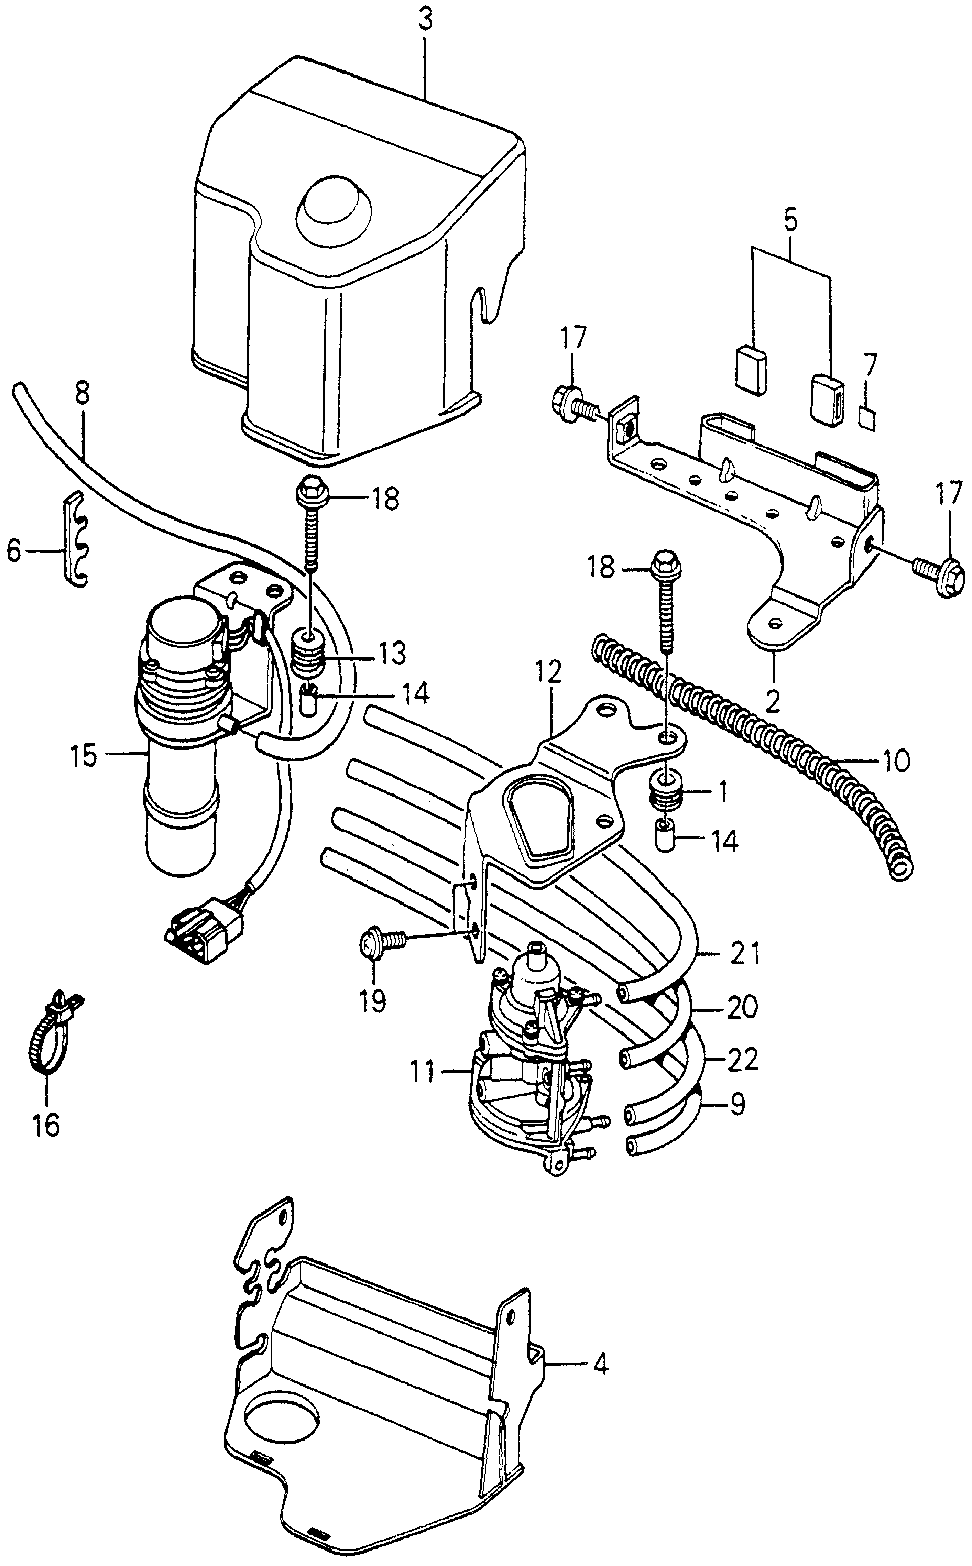 18724-PA6-680 - RUBBER, CONTROL BOX MOUNTING